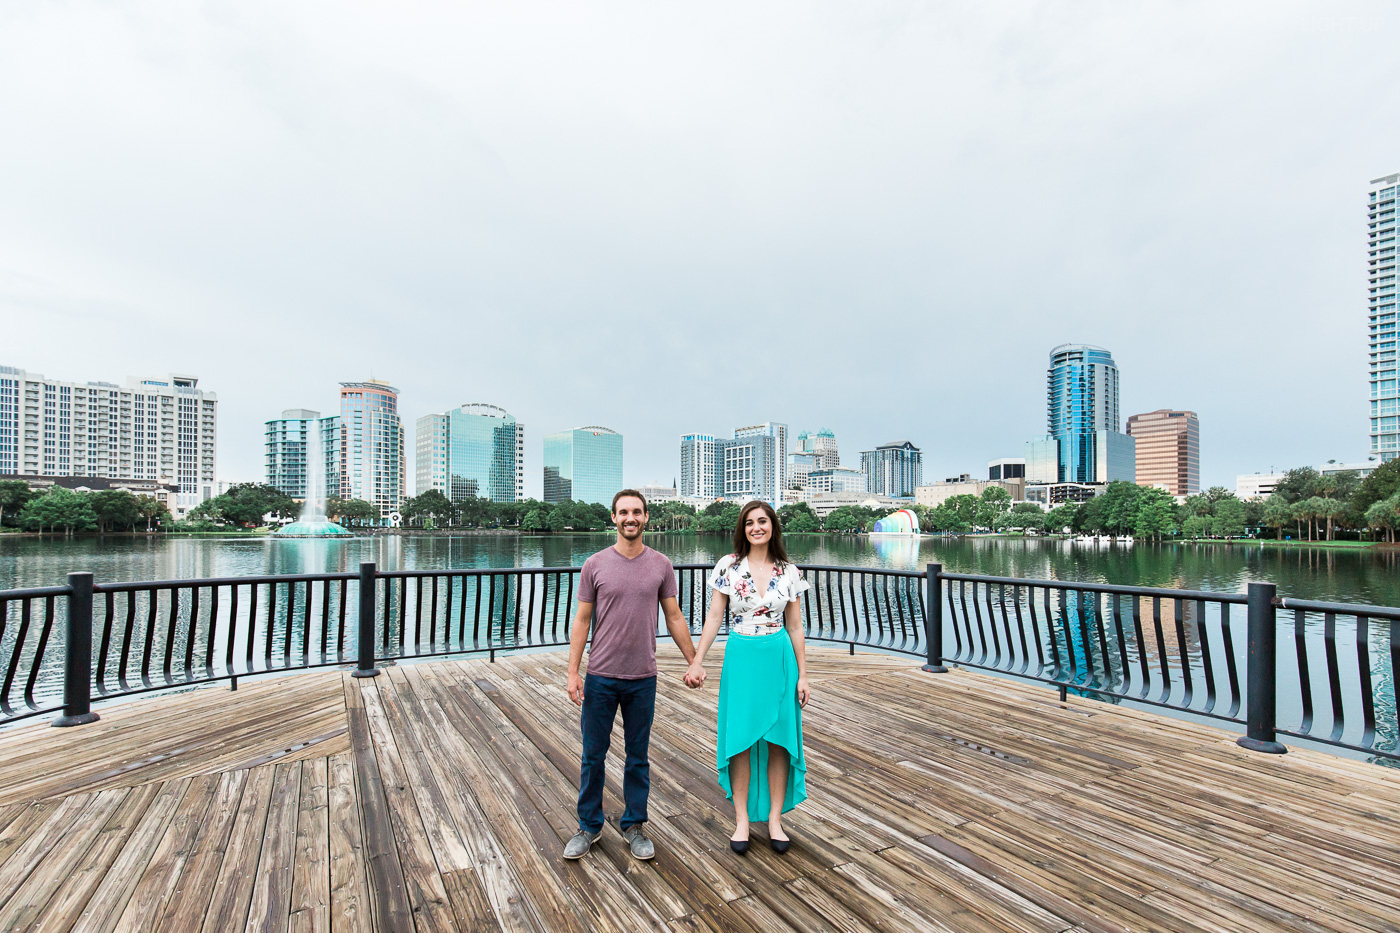 downtown-orlando-engagement-1.jpg